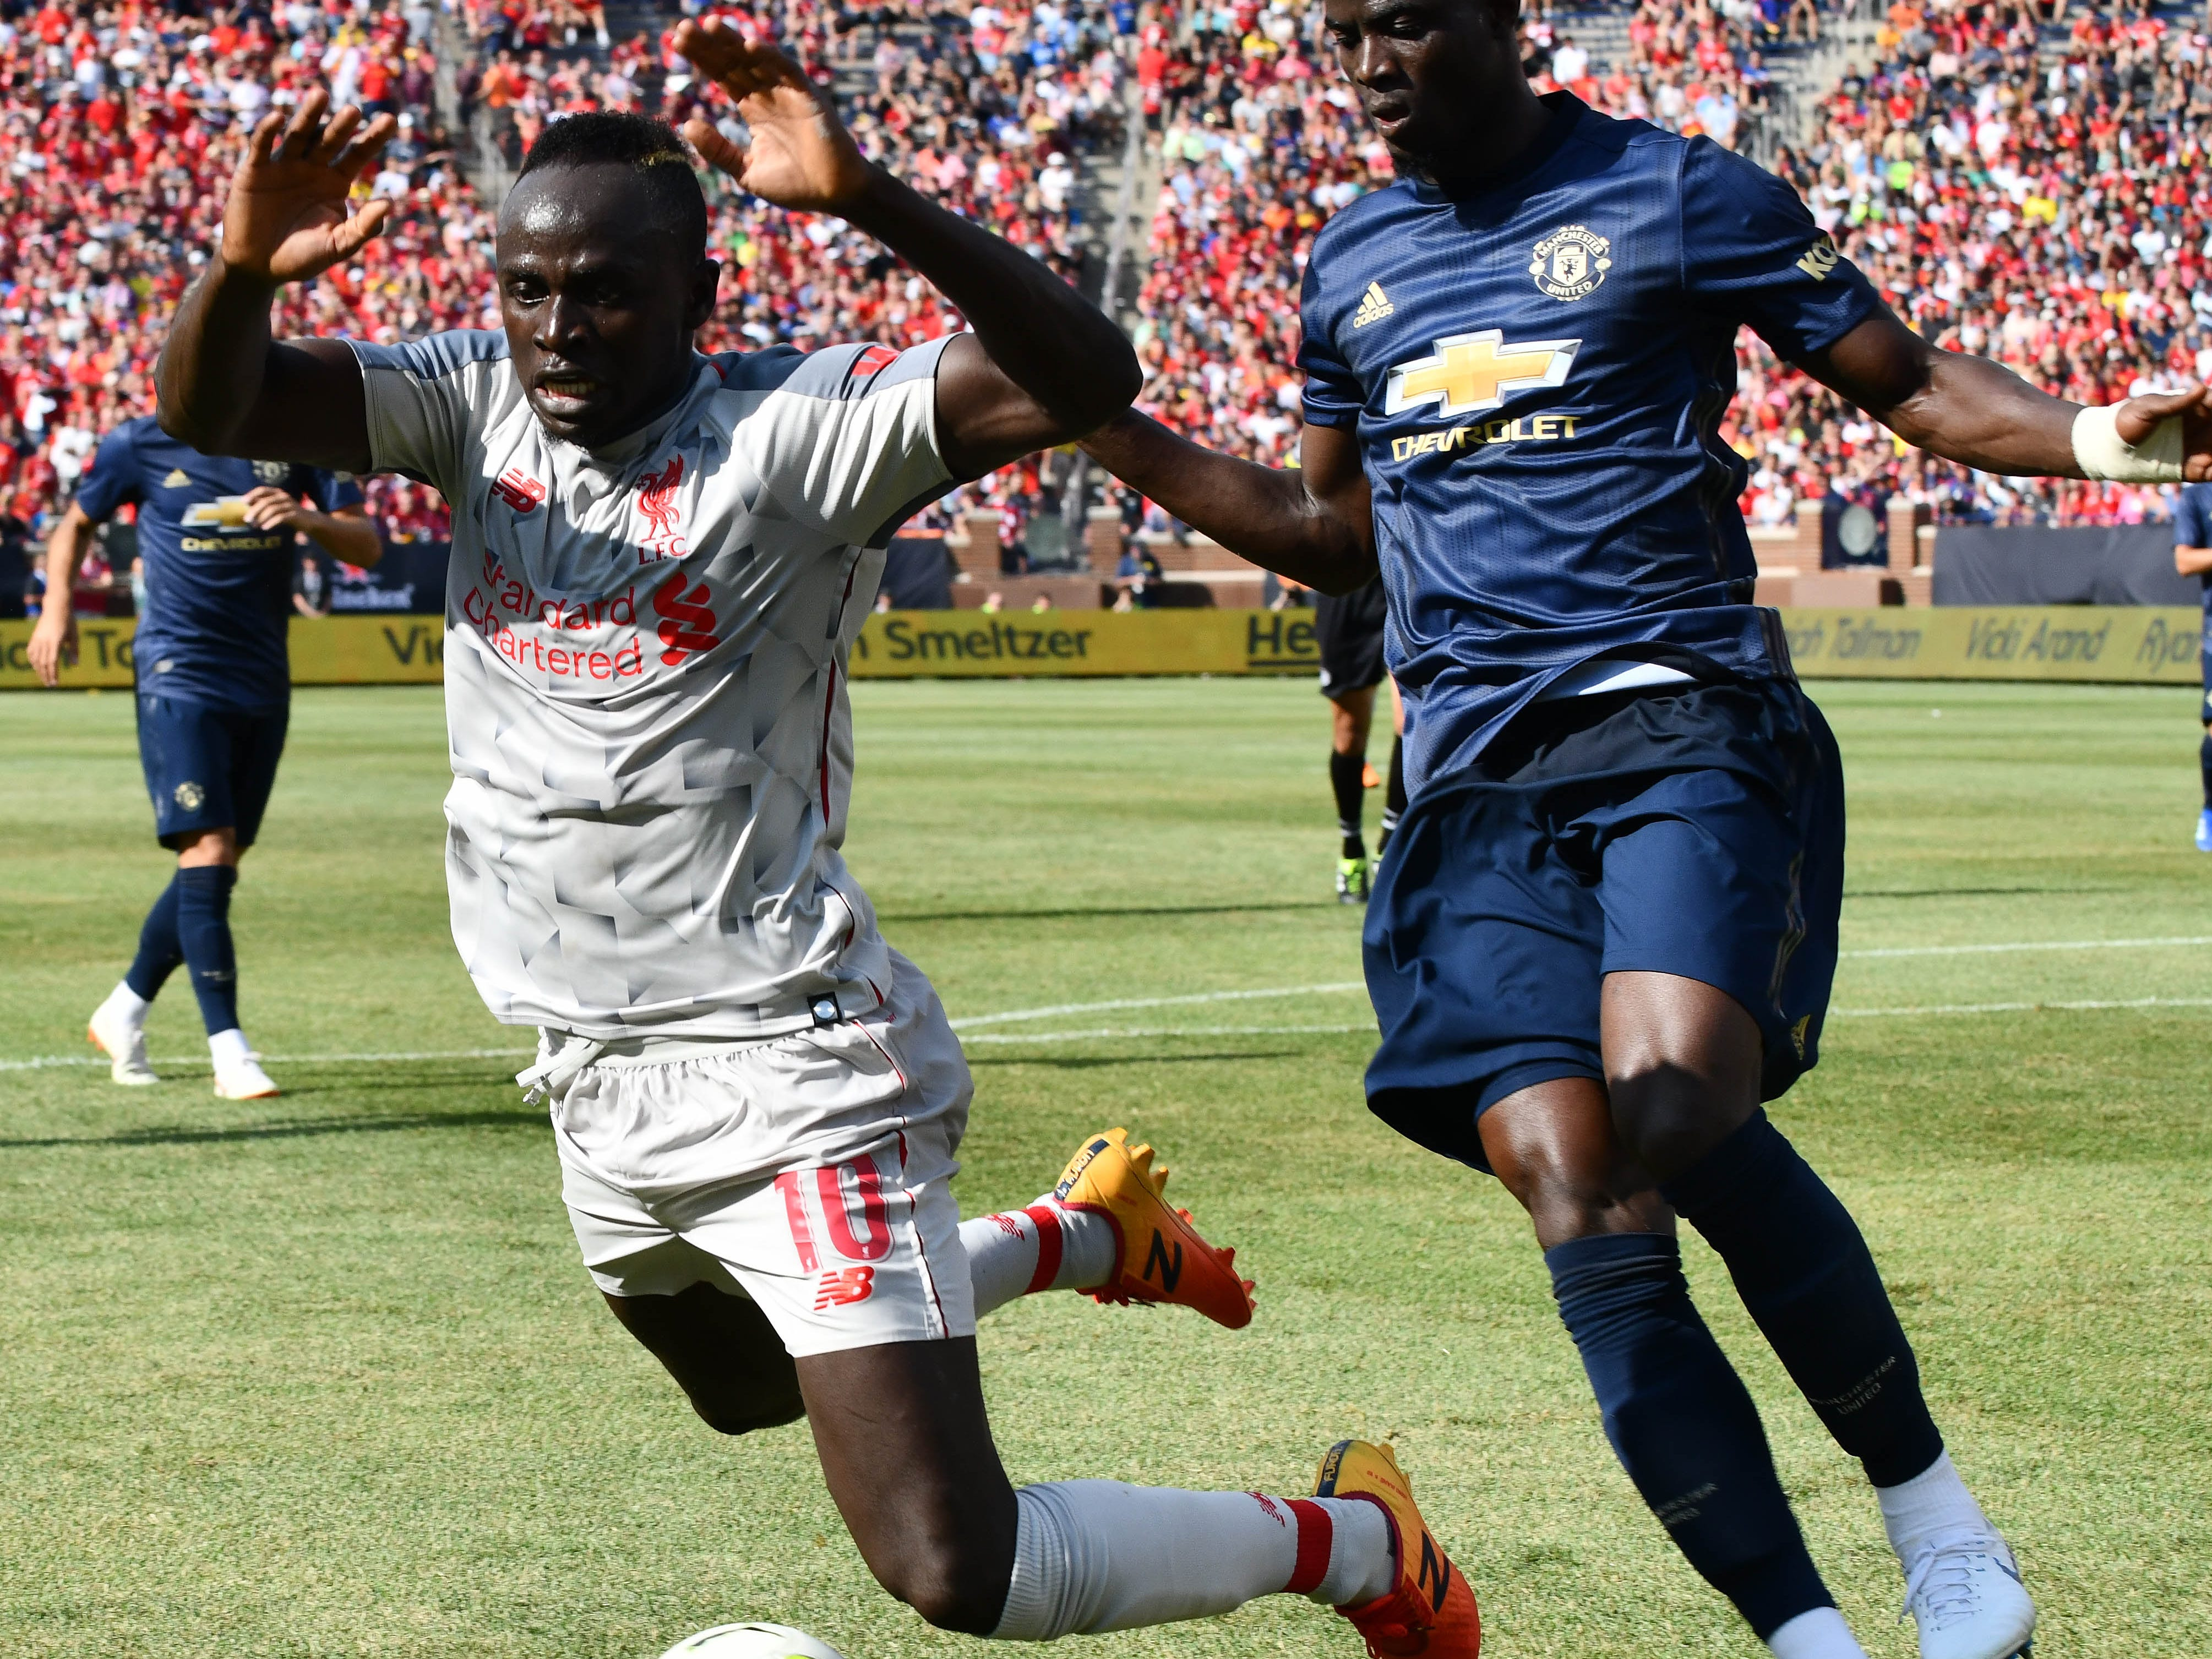 Liverpool's Said Mane' is taken off his feet by Manchester's Eric Bailly in the first half.